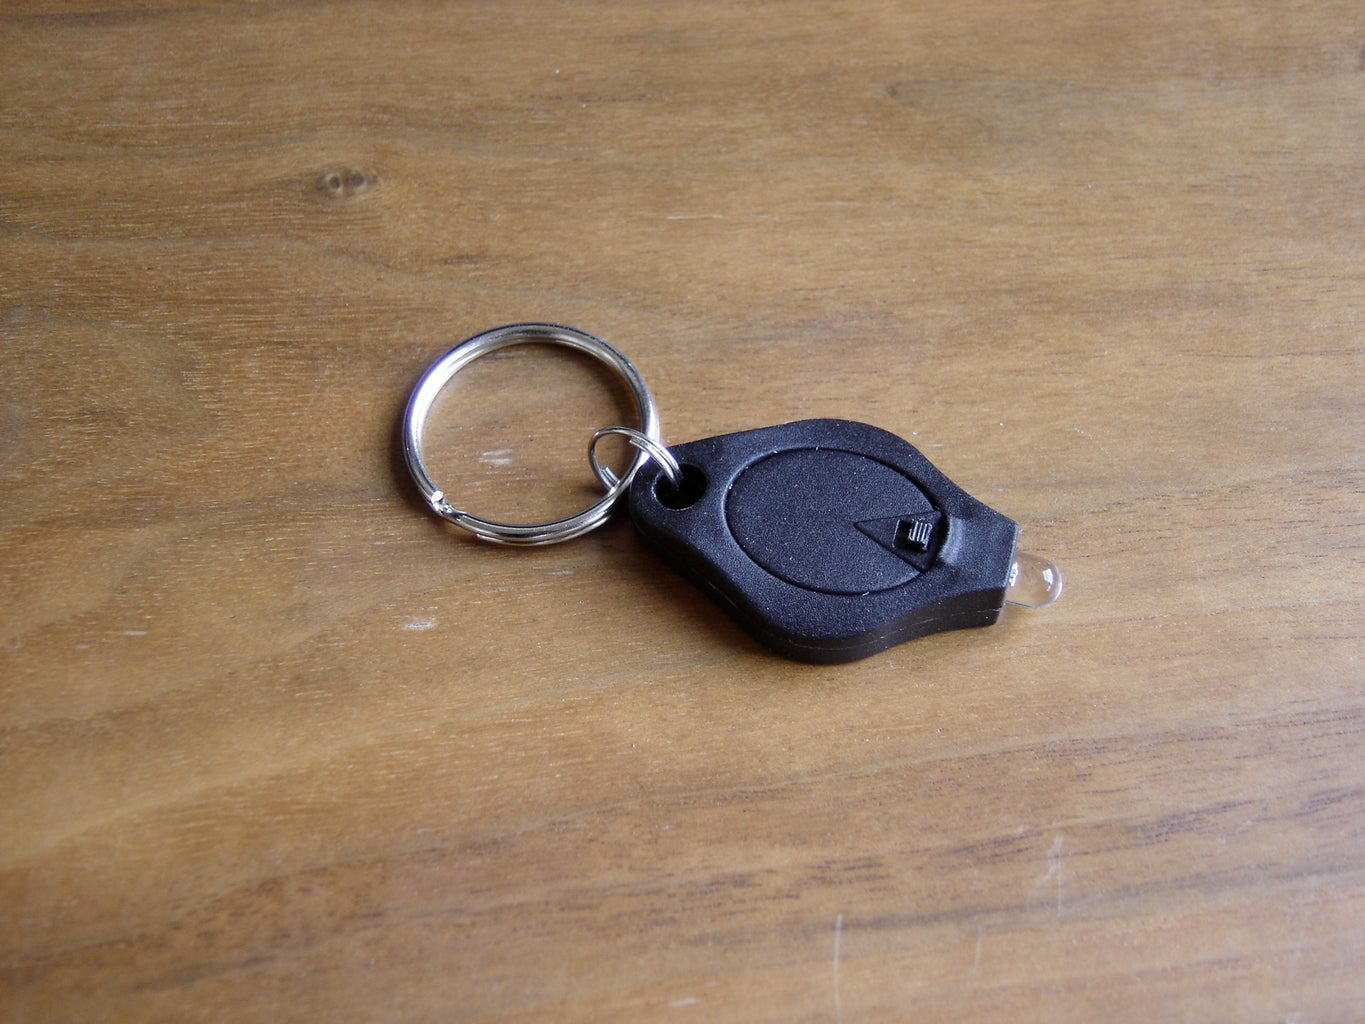 Buy a Pack of Keychain Lights